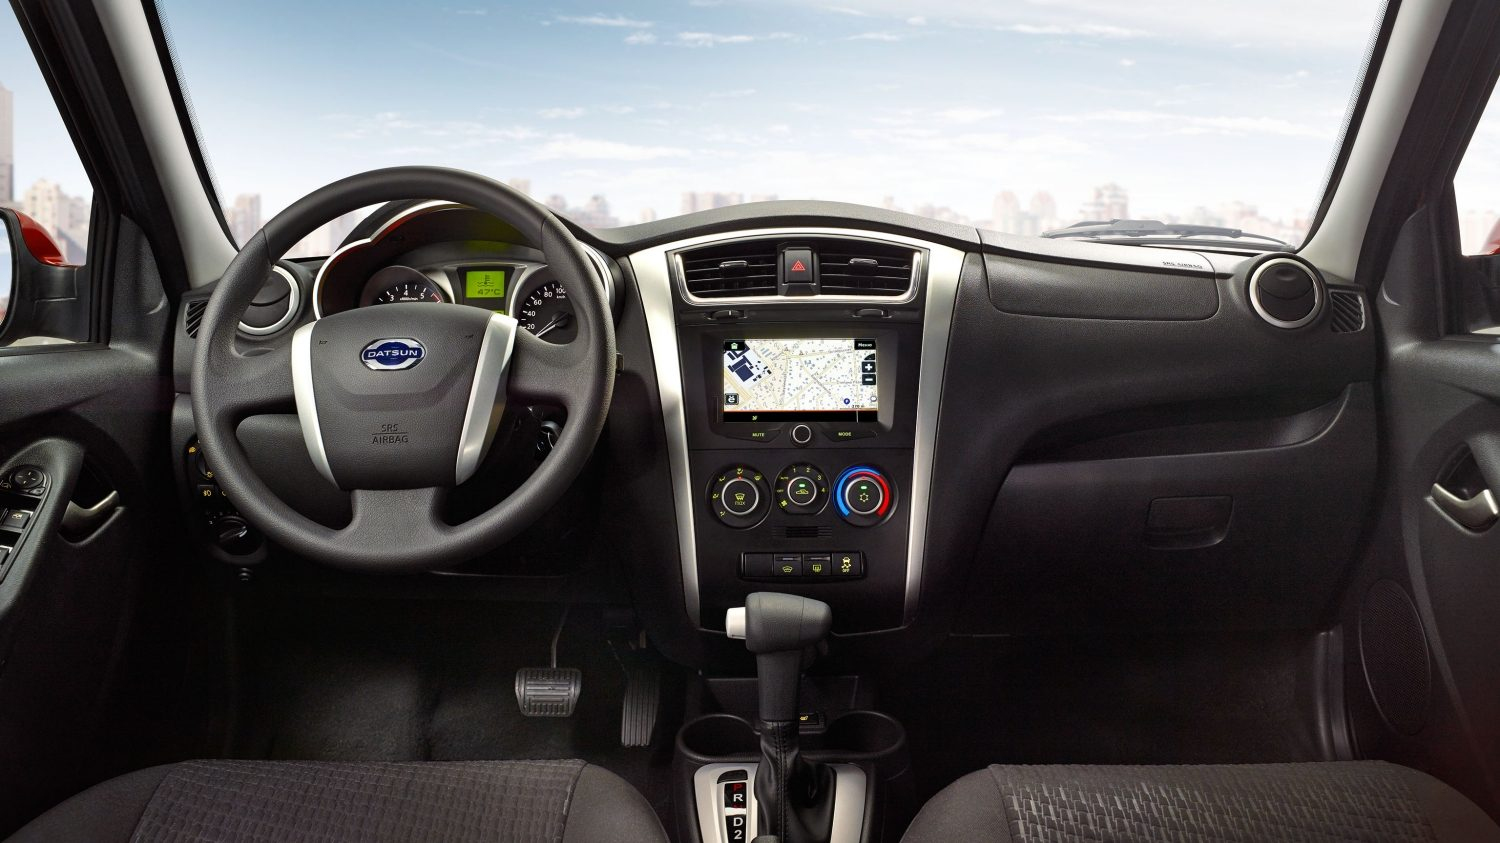 'Interior Shot of Steering Wheel and Dash